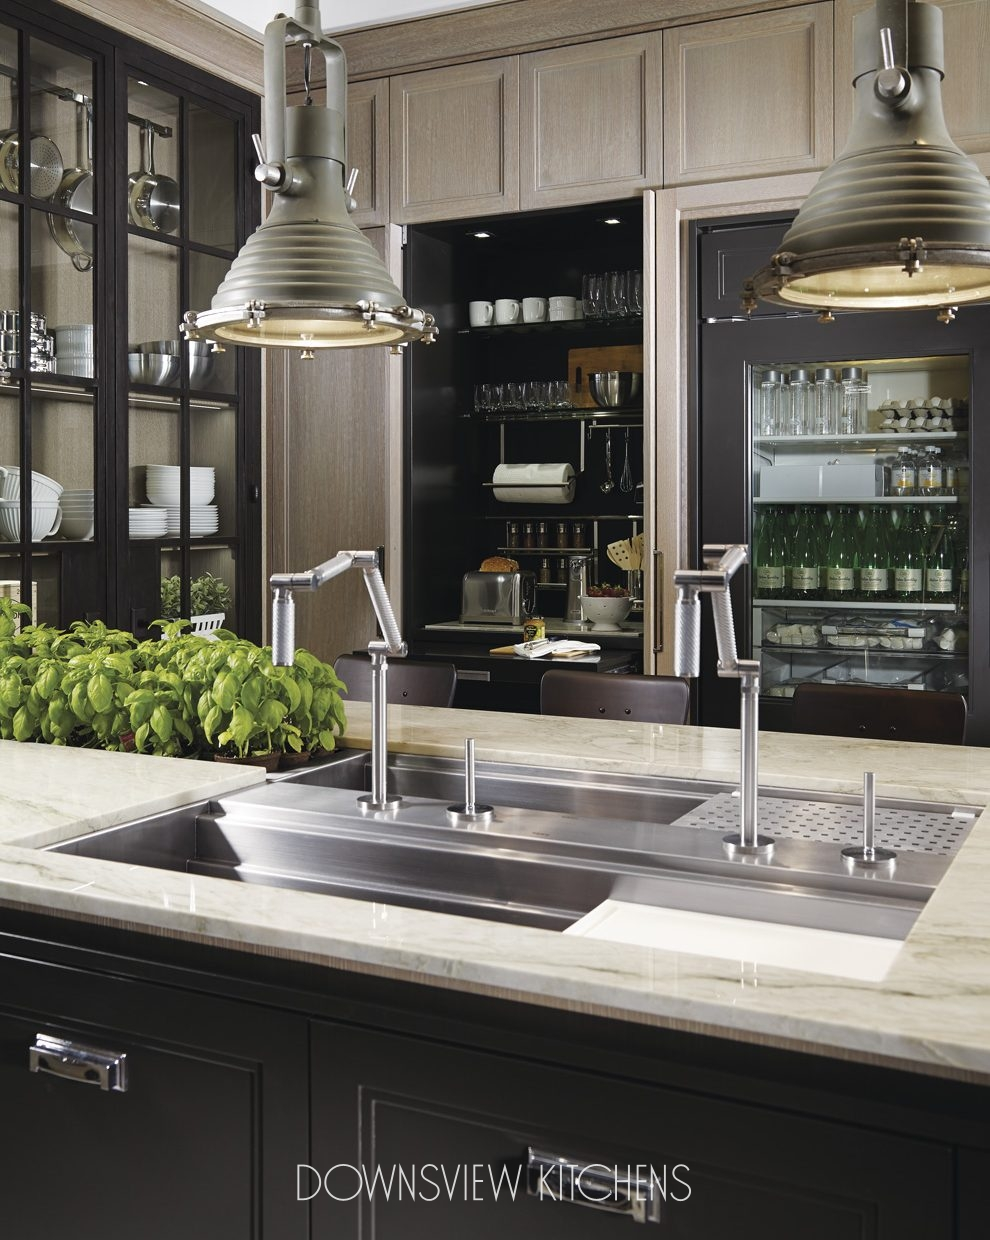 Industrial Chic Downsview Kitchens And Fine Custom Cabinetry Manufacturers Of Custom Kitchen